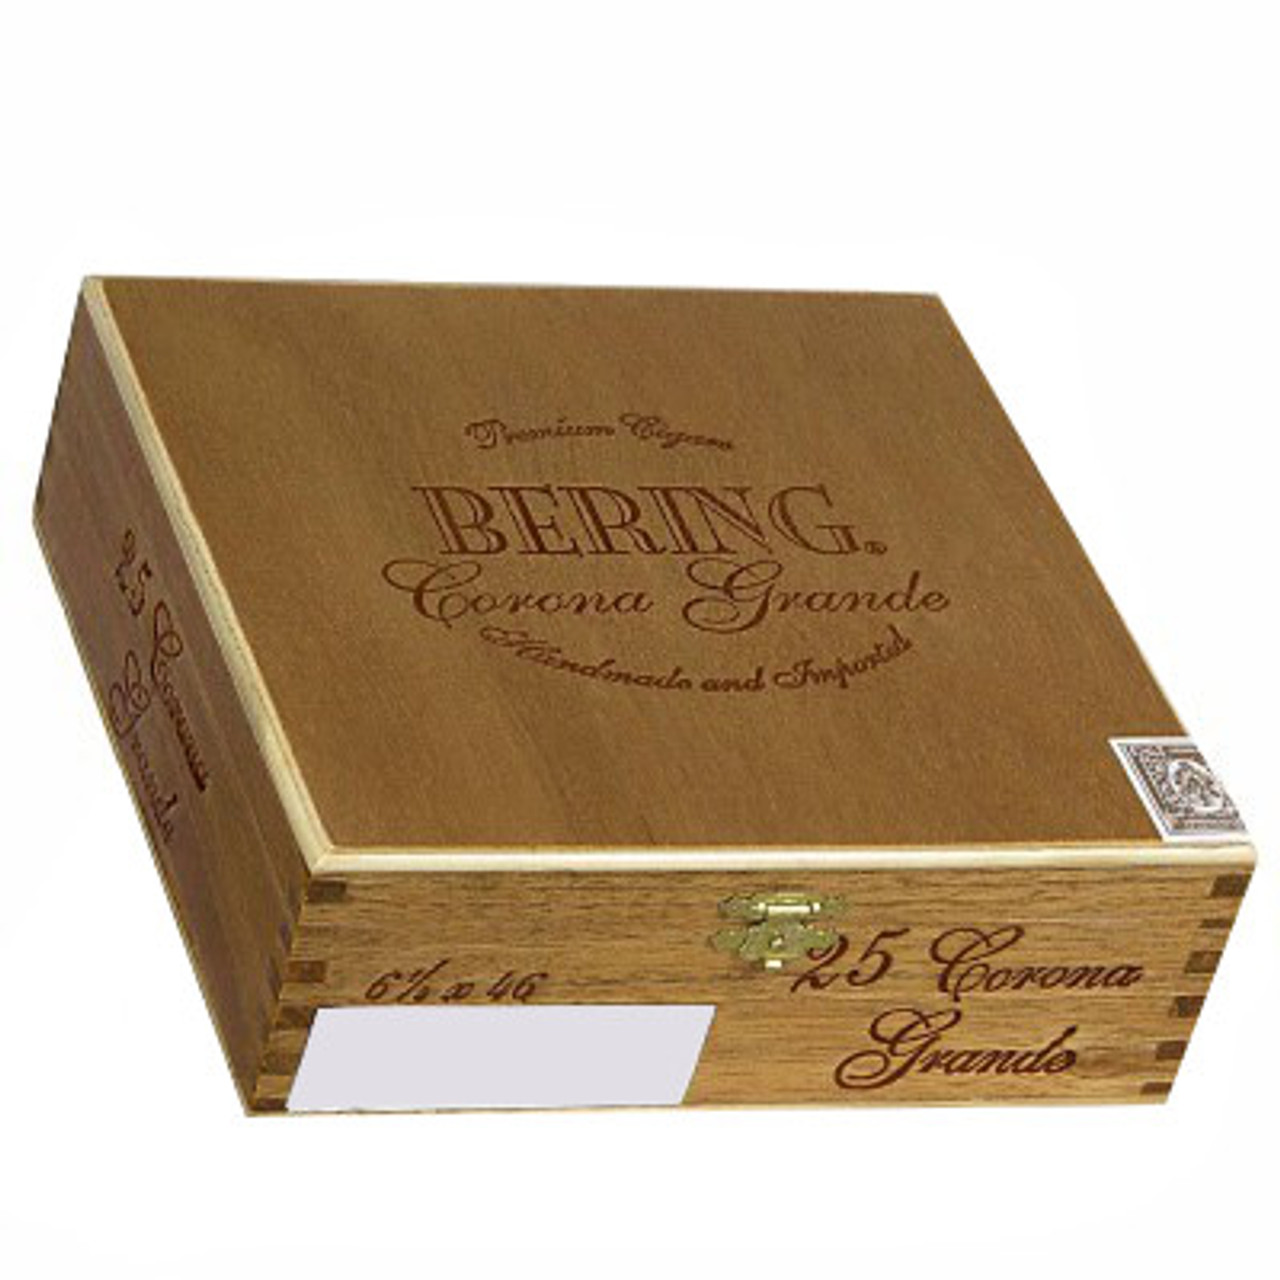 Bering Corona Grande Natural Cigars - 6 1/4 x 46 (Box of 25)